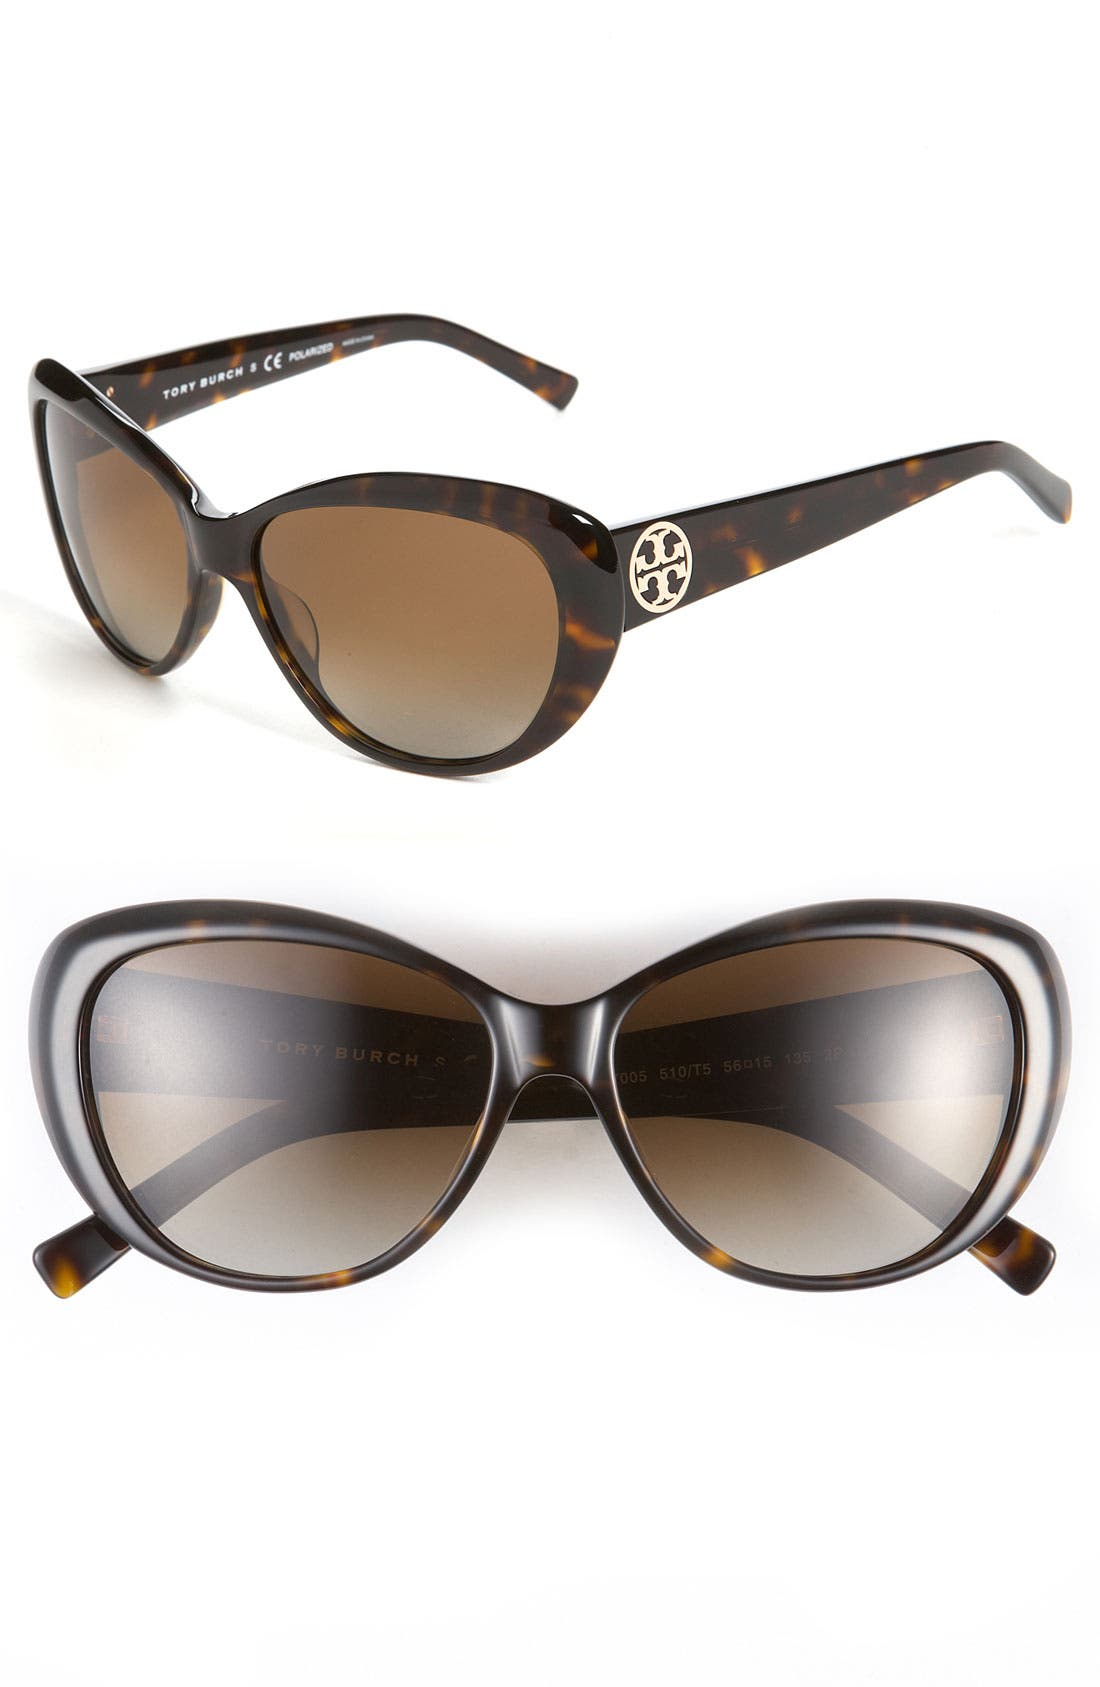 Main Image - Tory Burch 56mm Polarized Cat's Eye Sunglasses